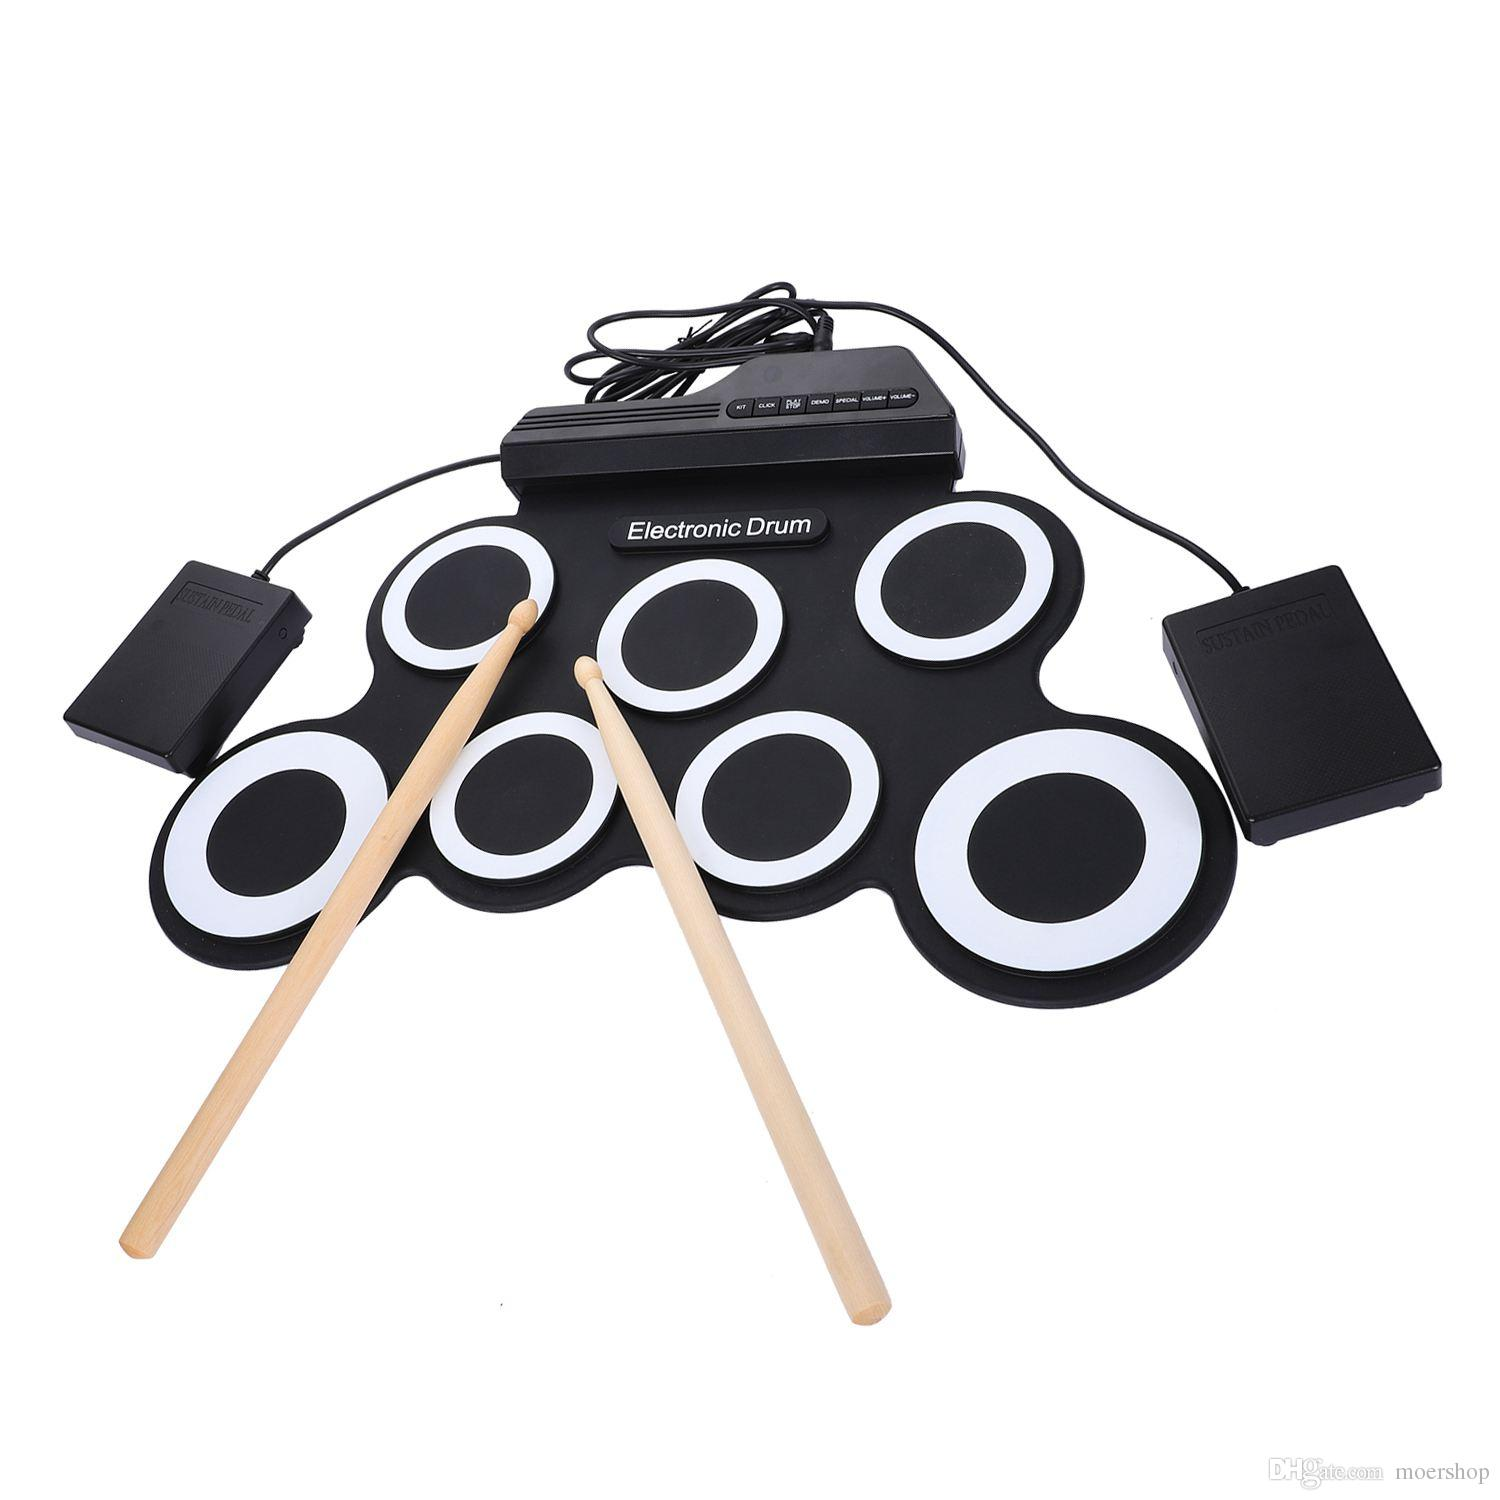 Portable Electronic Roll Up Drum Pad Set 9 Silicon Pads Built-In Speakers With Drumsticks Foot Pedals Usb 3.5Mm Audio Cable Uk7 Pads Portabl